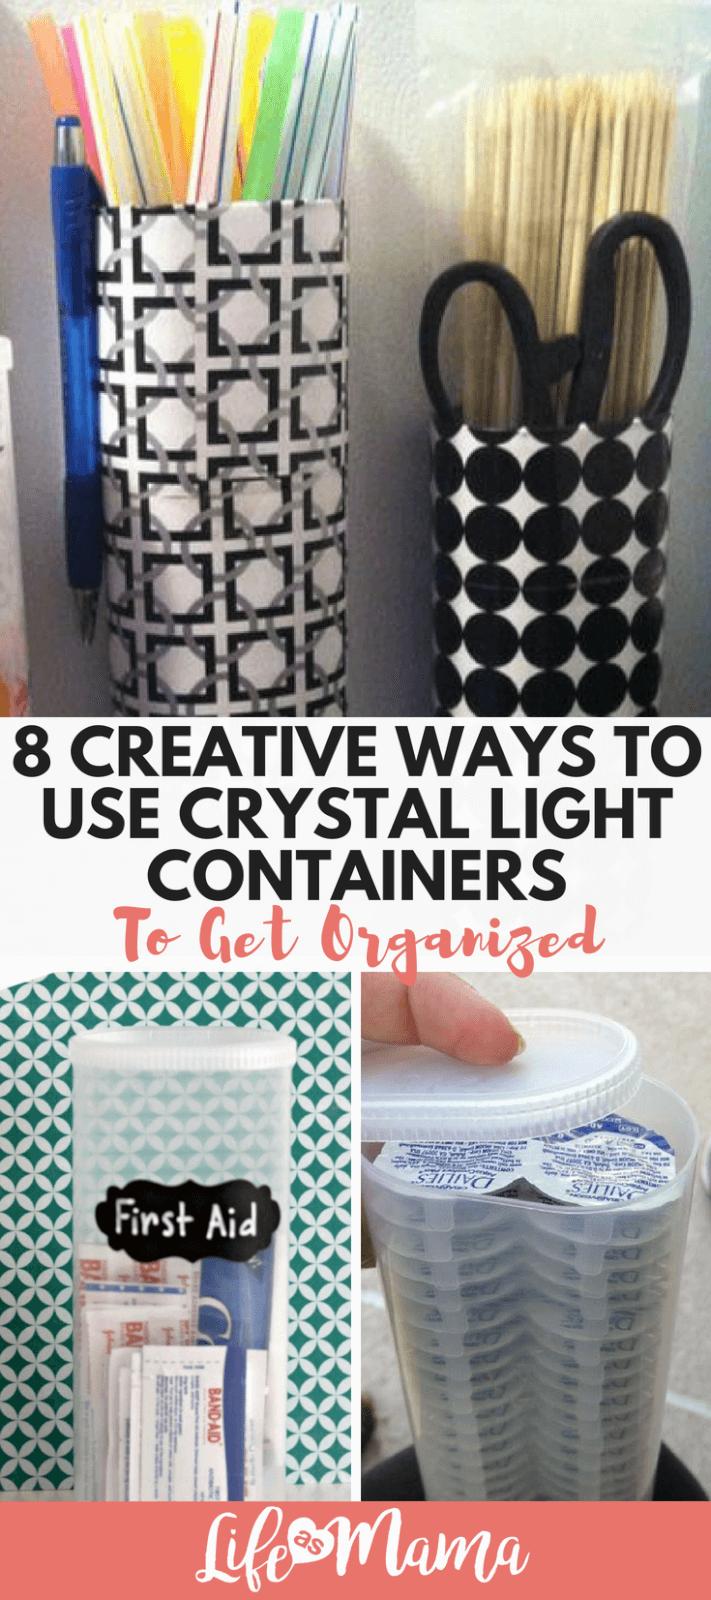 8 Creative Ways To Use Crystal Light Containers To Get Organized